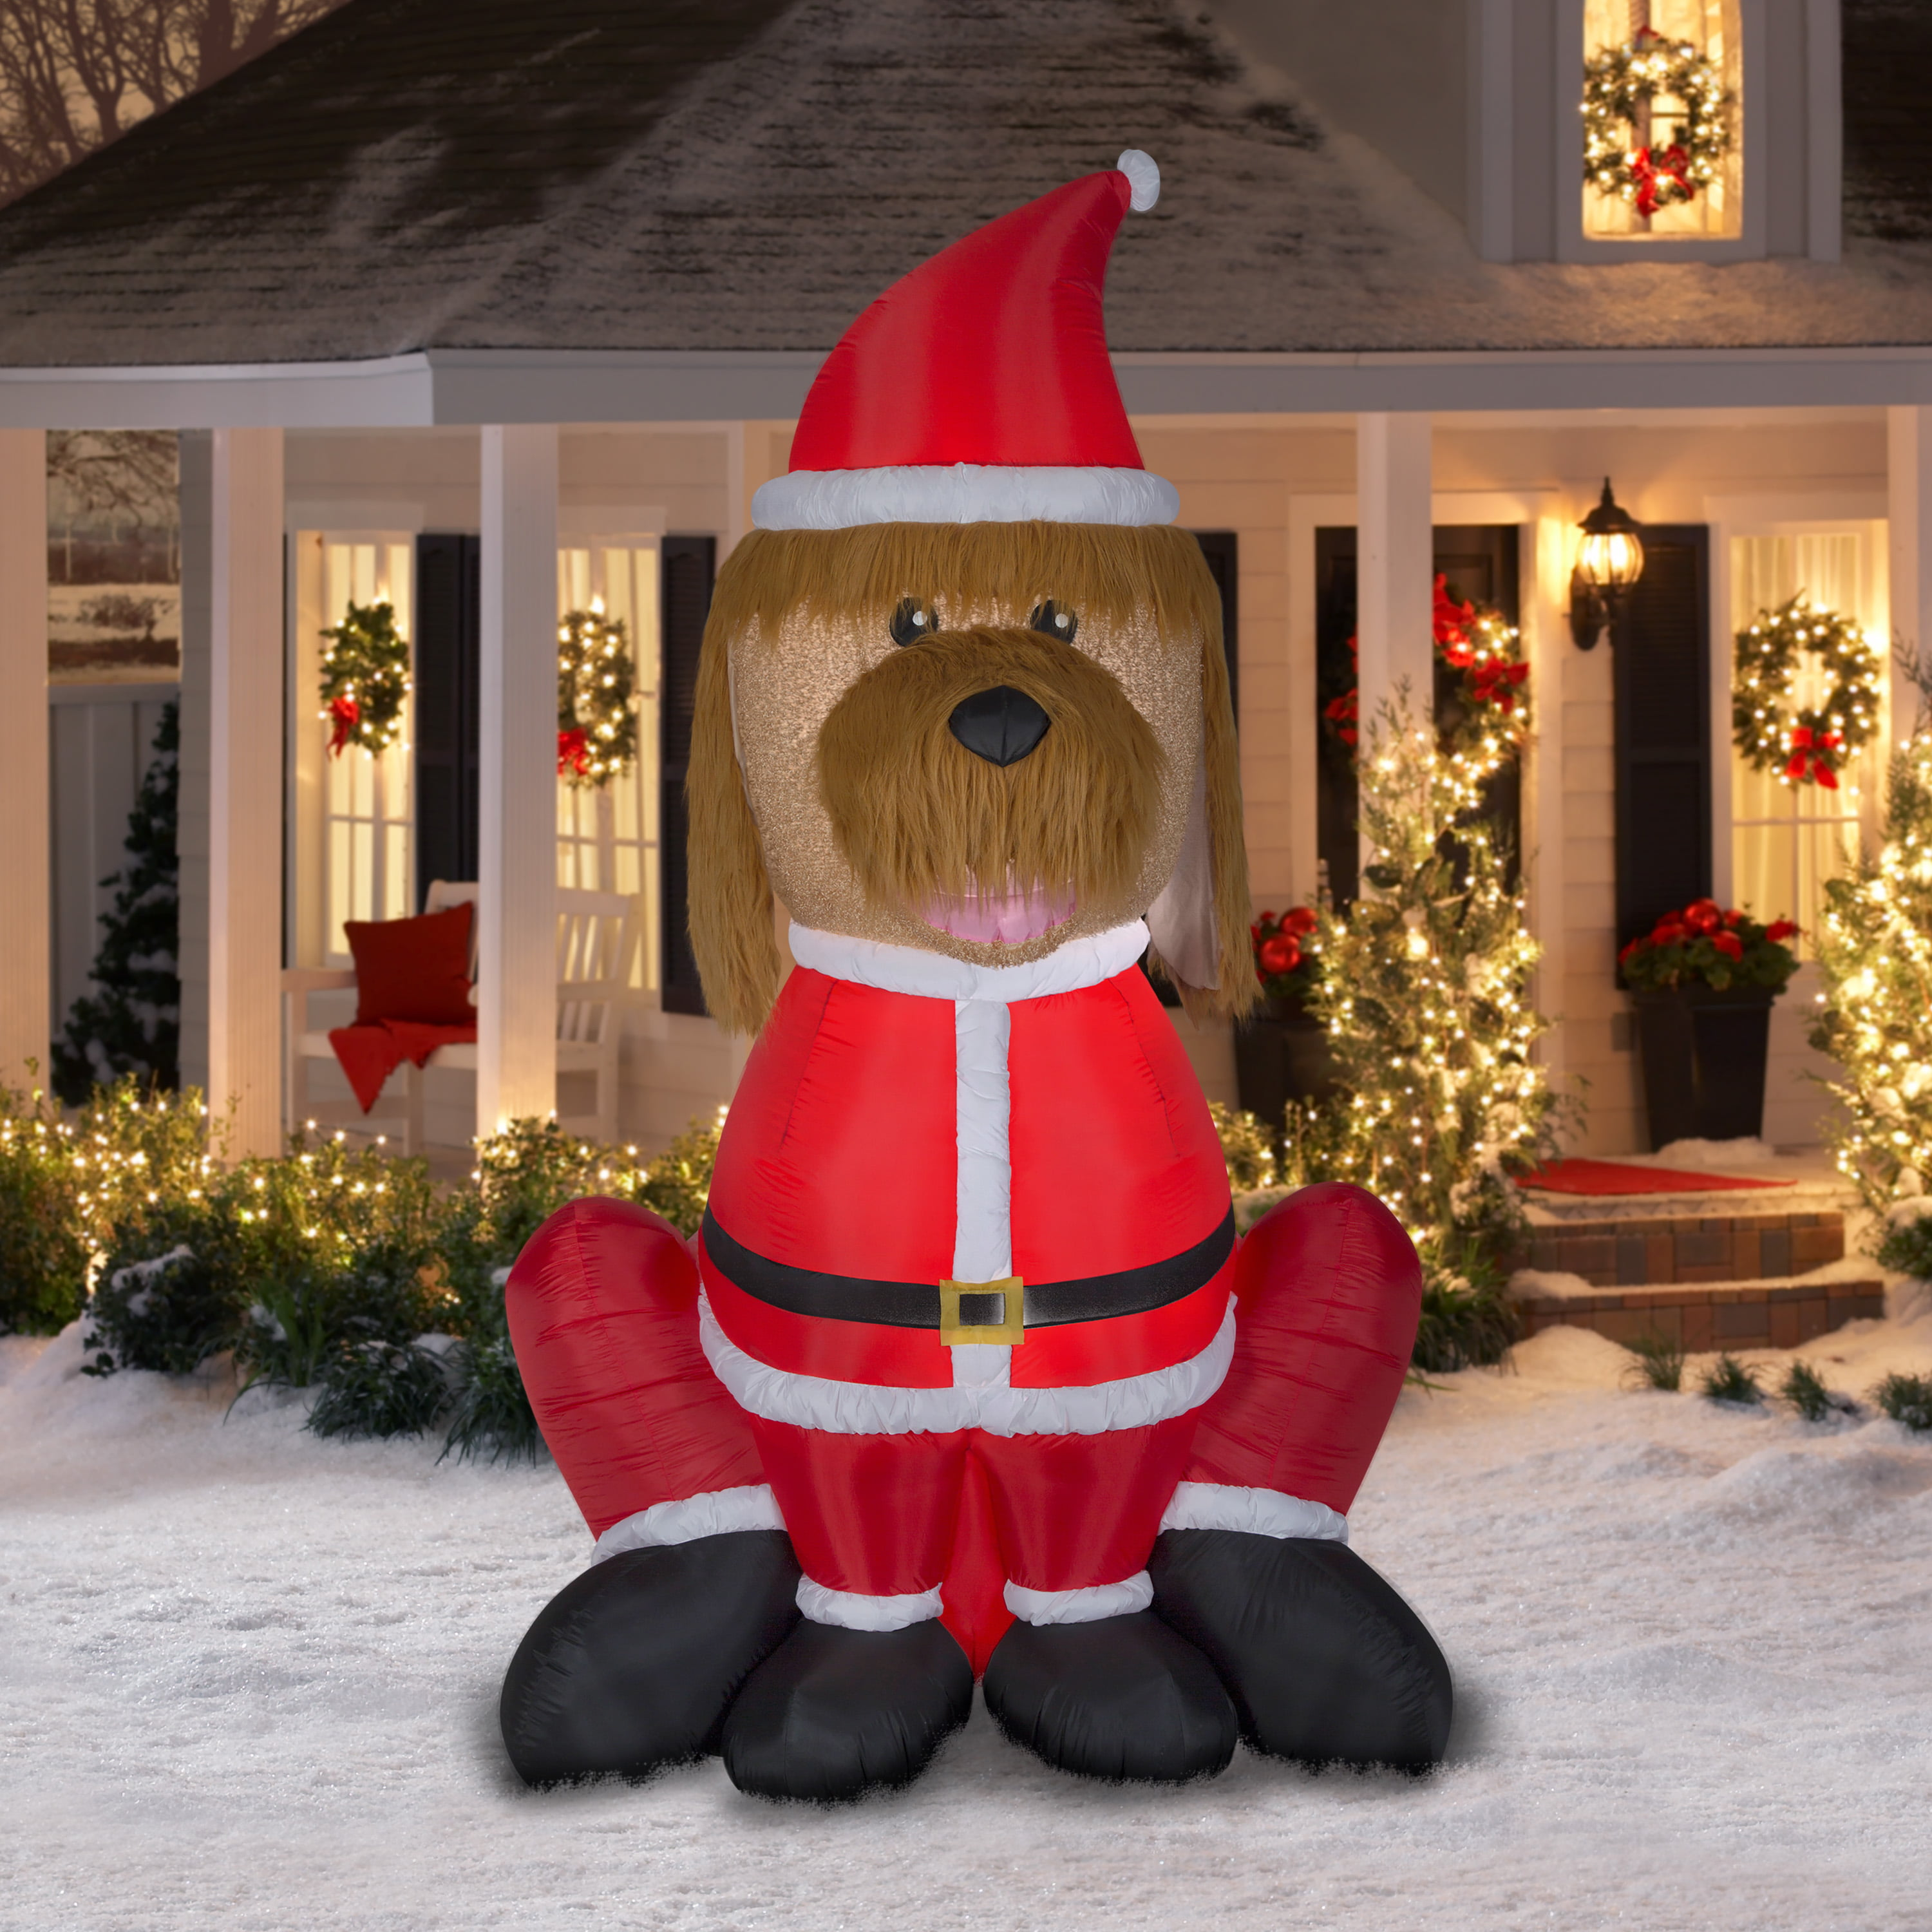 airblown inflatable mixed media golden doodle giant 9ft tall by gemmy industries walmartcom - Goldendoodle Christmas Decorations